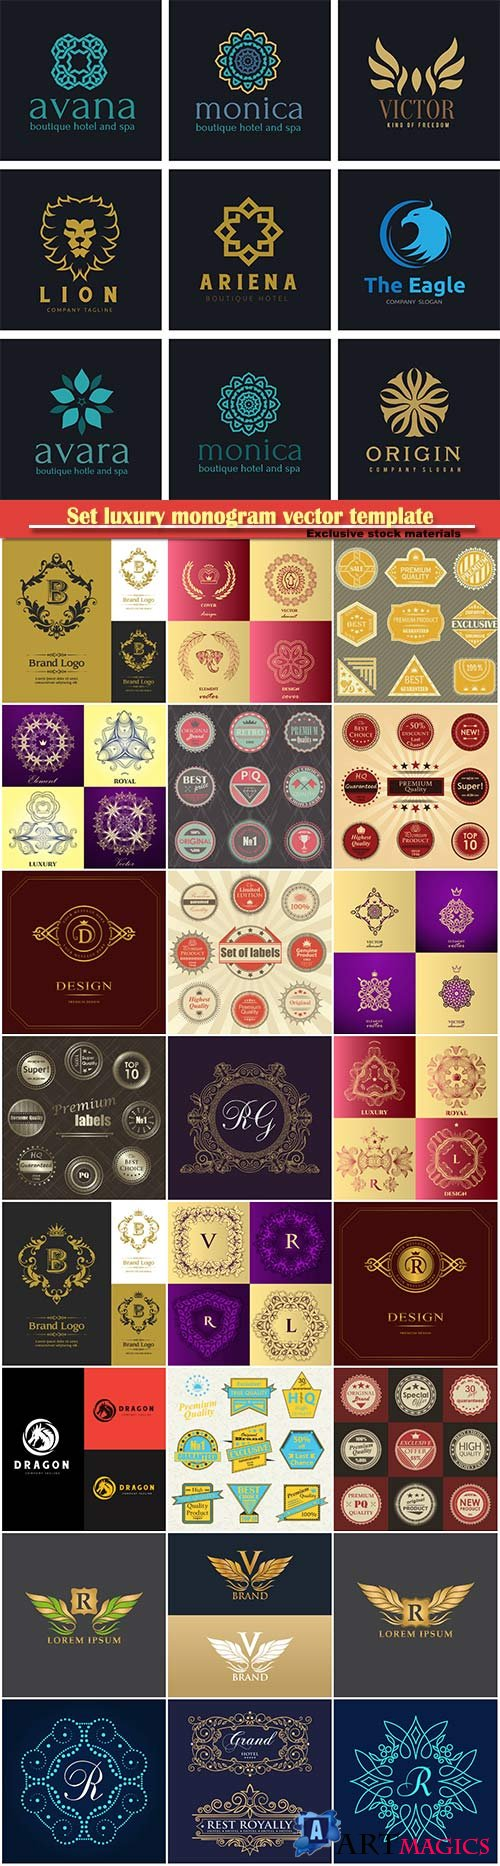 Set luxury monogram vector template, logos, badges, symbols # 6